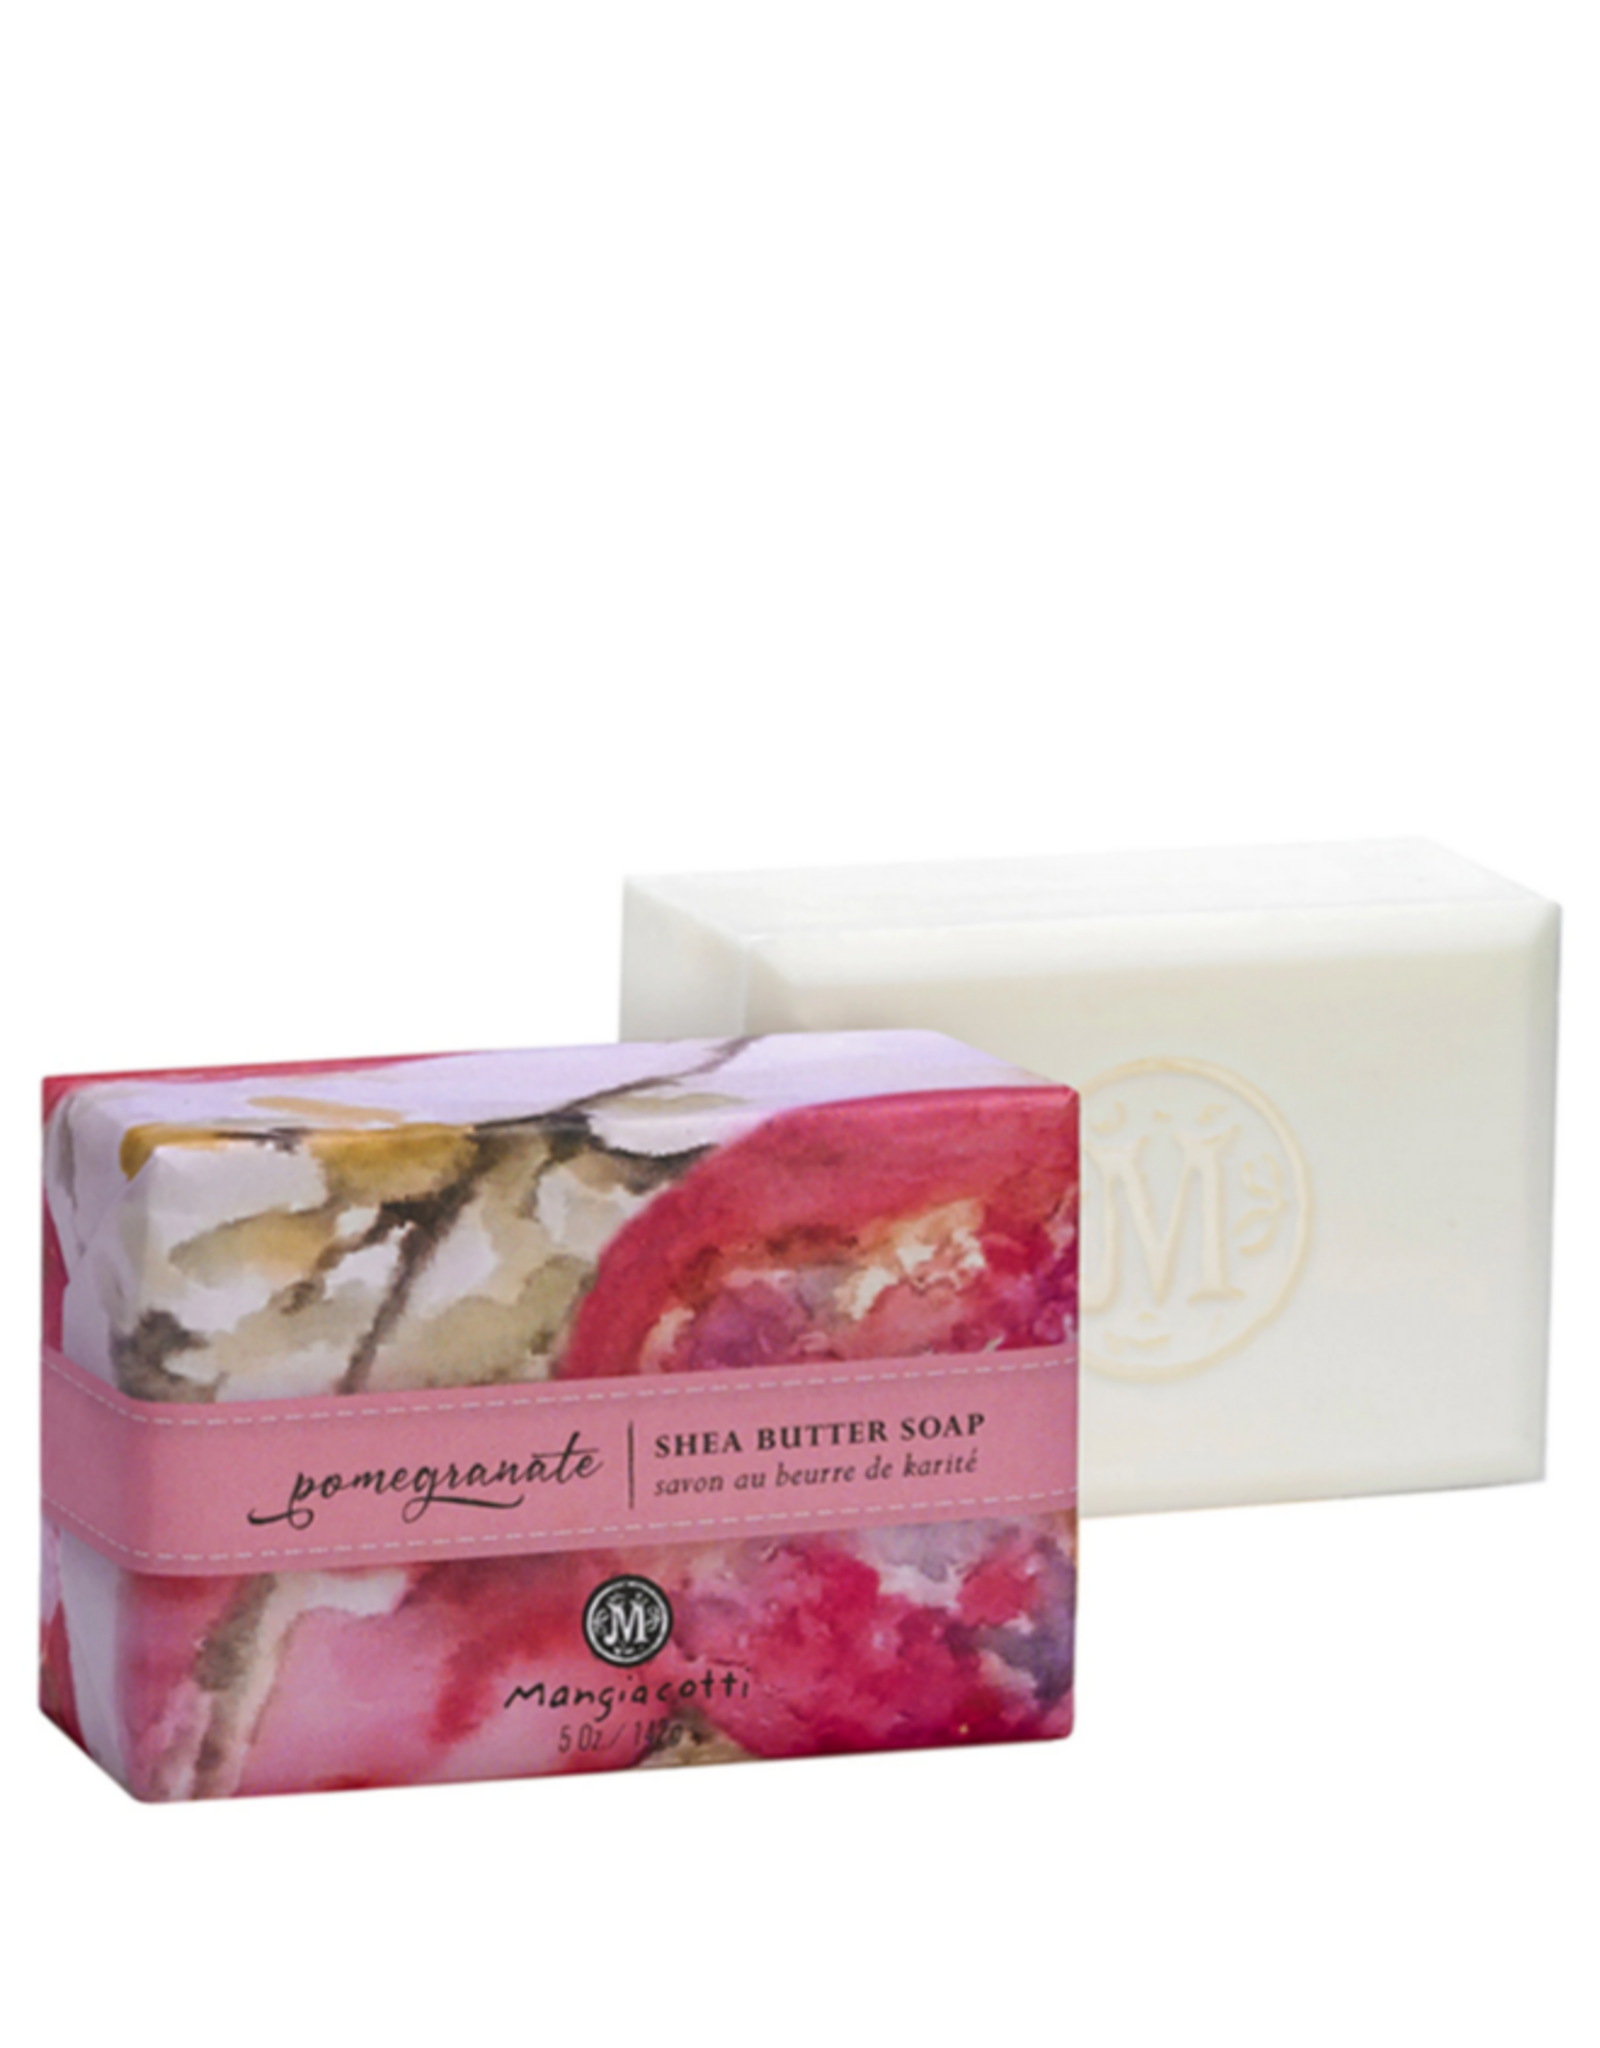 Pomegranate Shea Butter Bar Soap